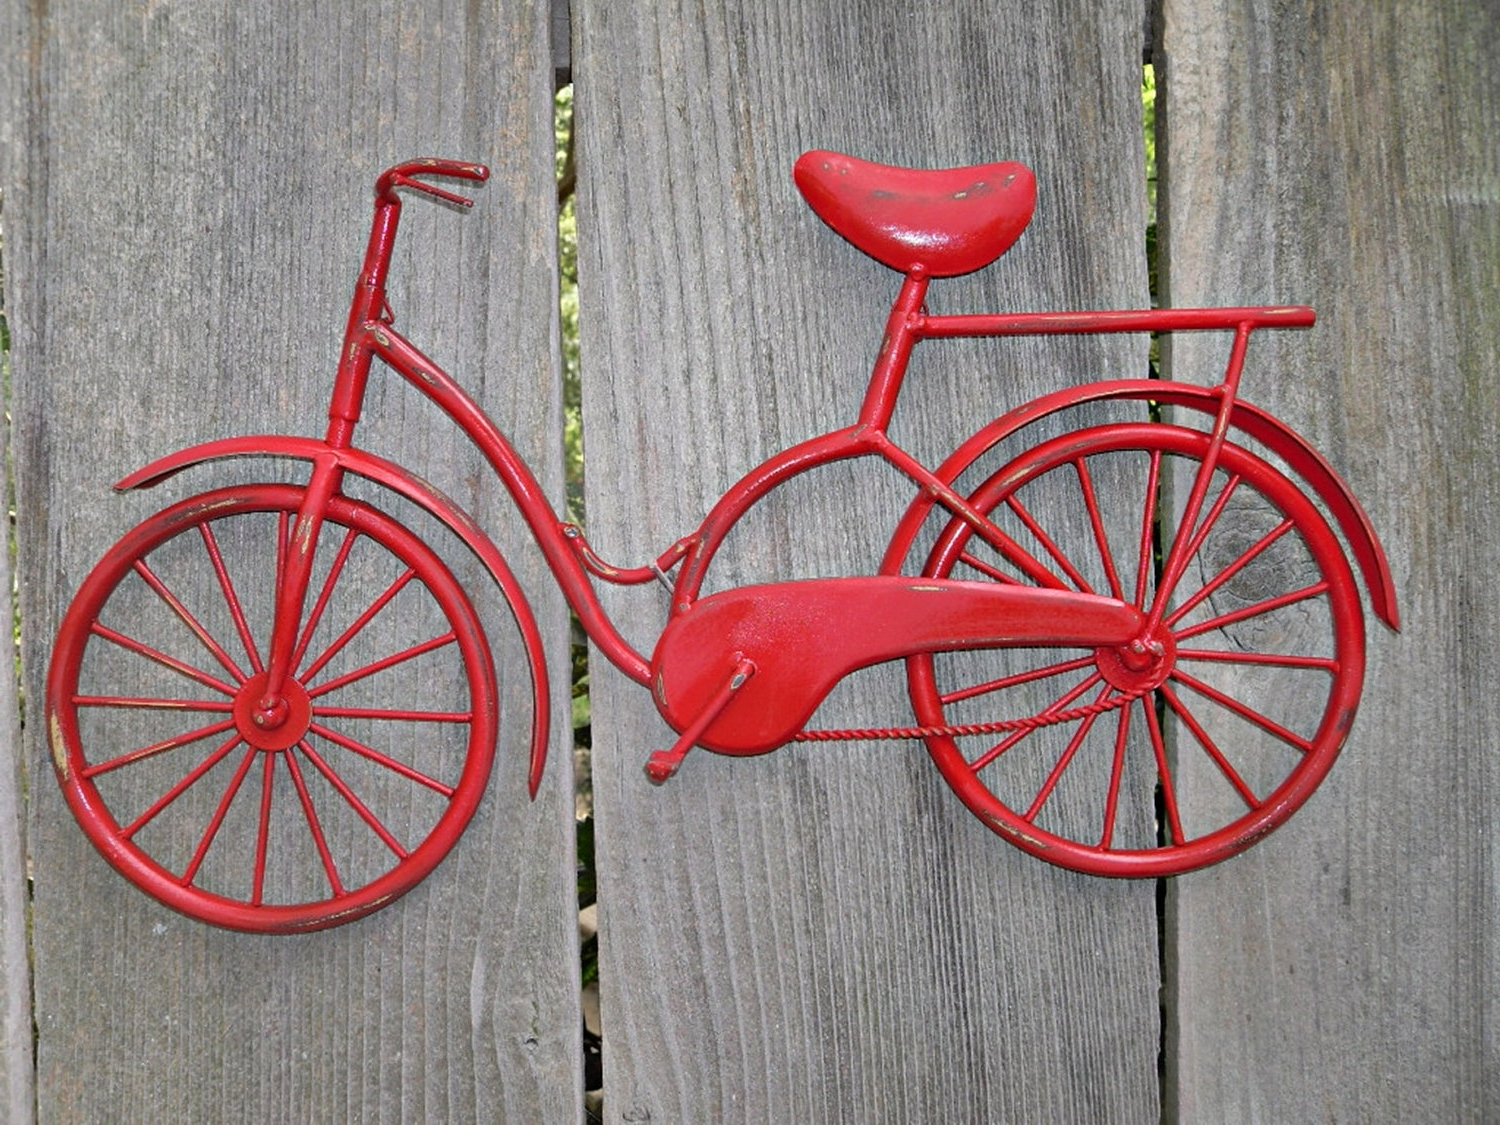 Bicycle Wall Art Decor Intended For Most Popular Metal Bicycle Wall Decor – Wall Decoration Ideas (View 12 of 15)